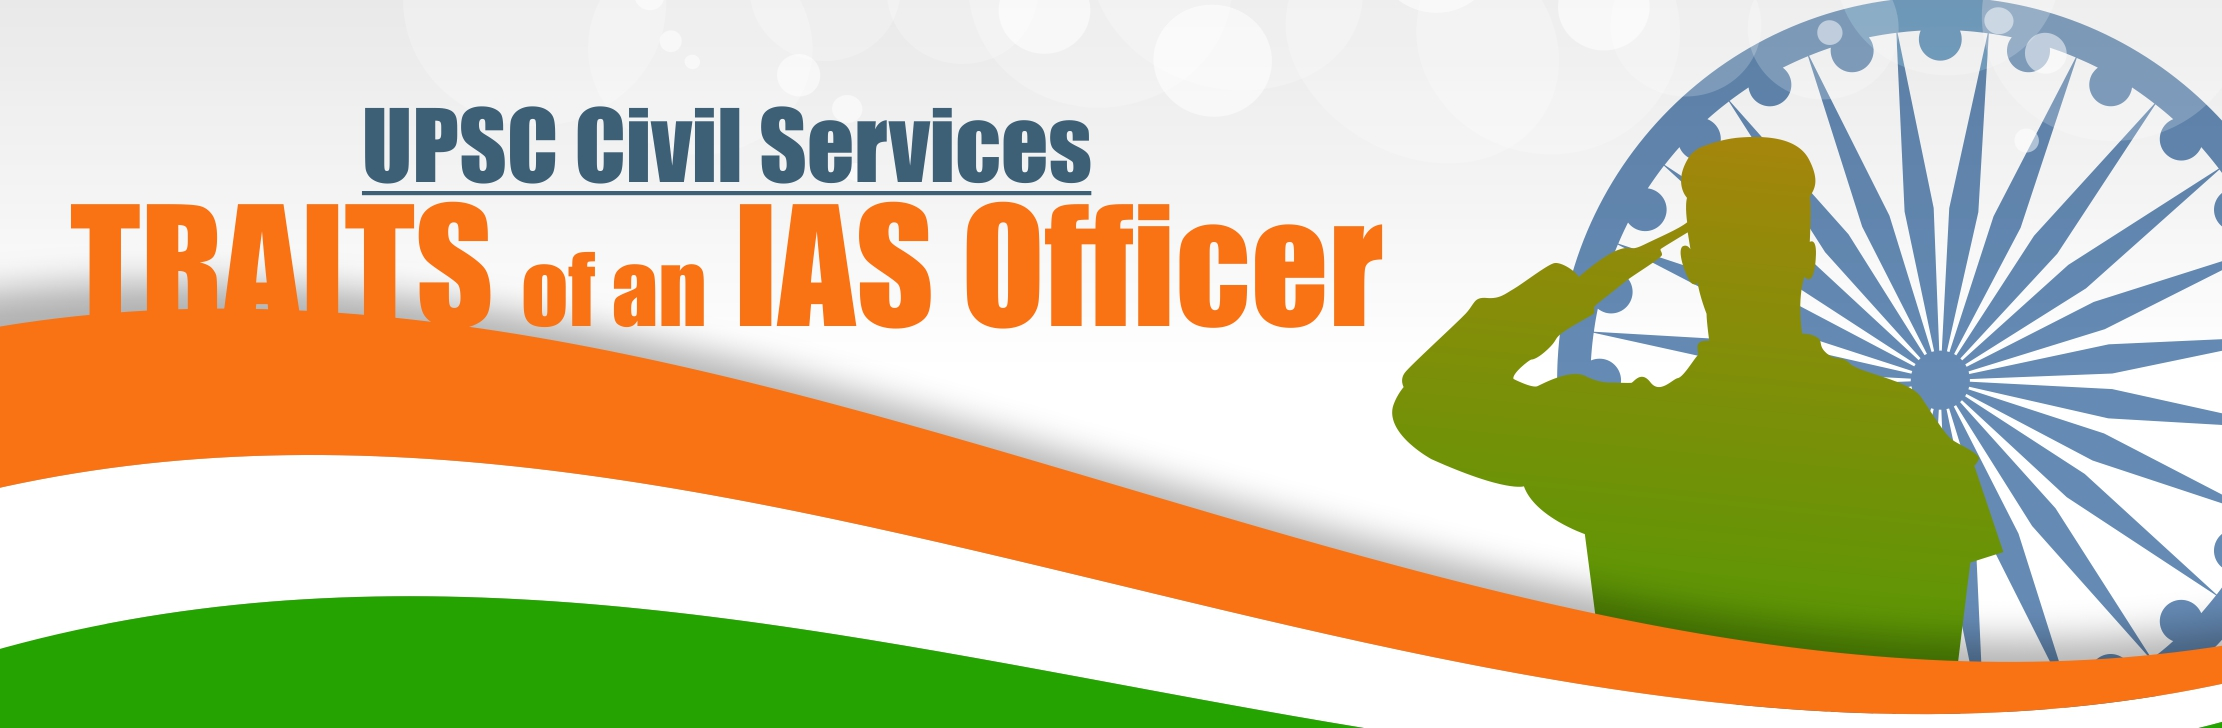 UPSC Civil Services-Traits of an IAS Officer